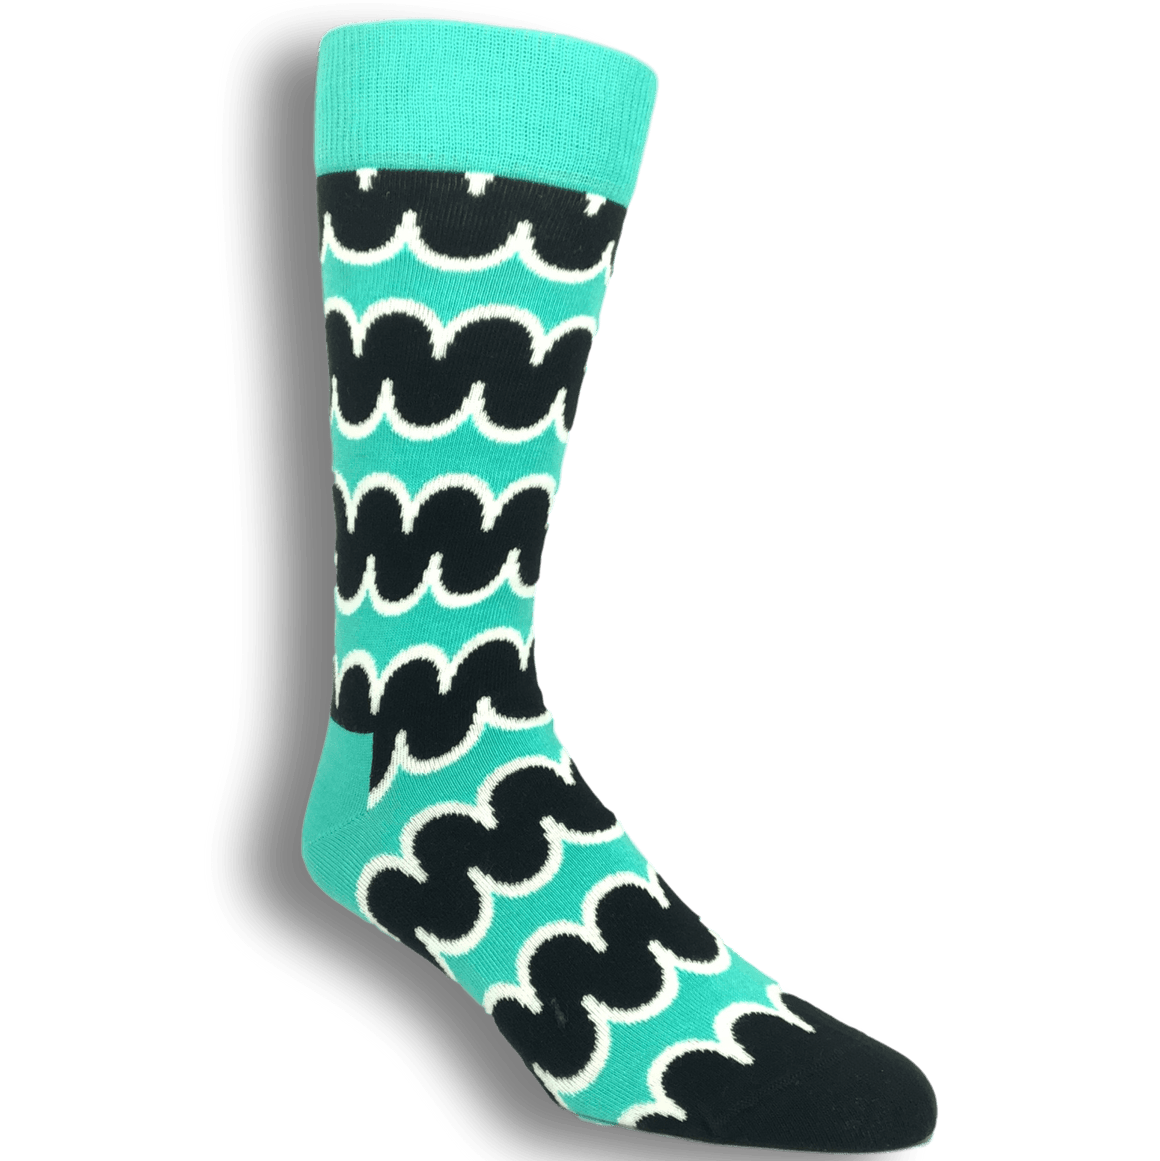 Socks - Teal And Black Squiggly Socks By Happy Socks